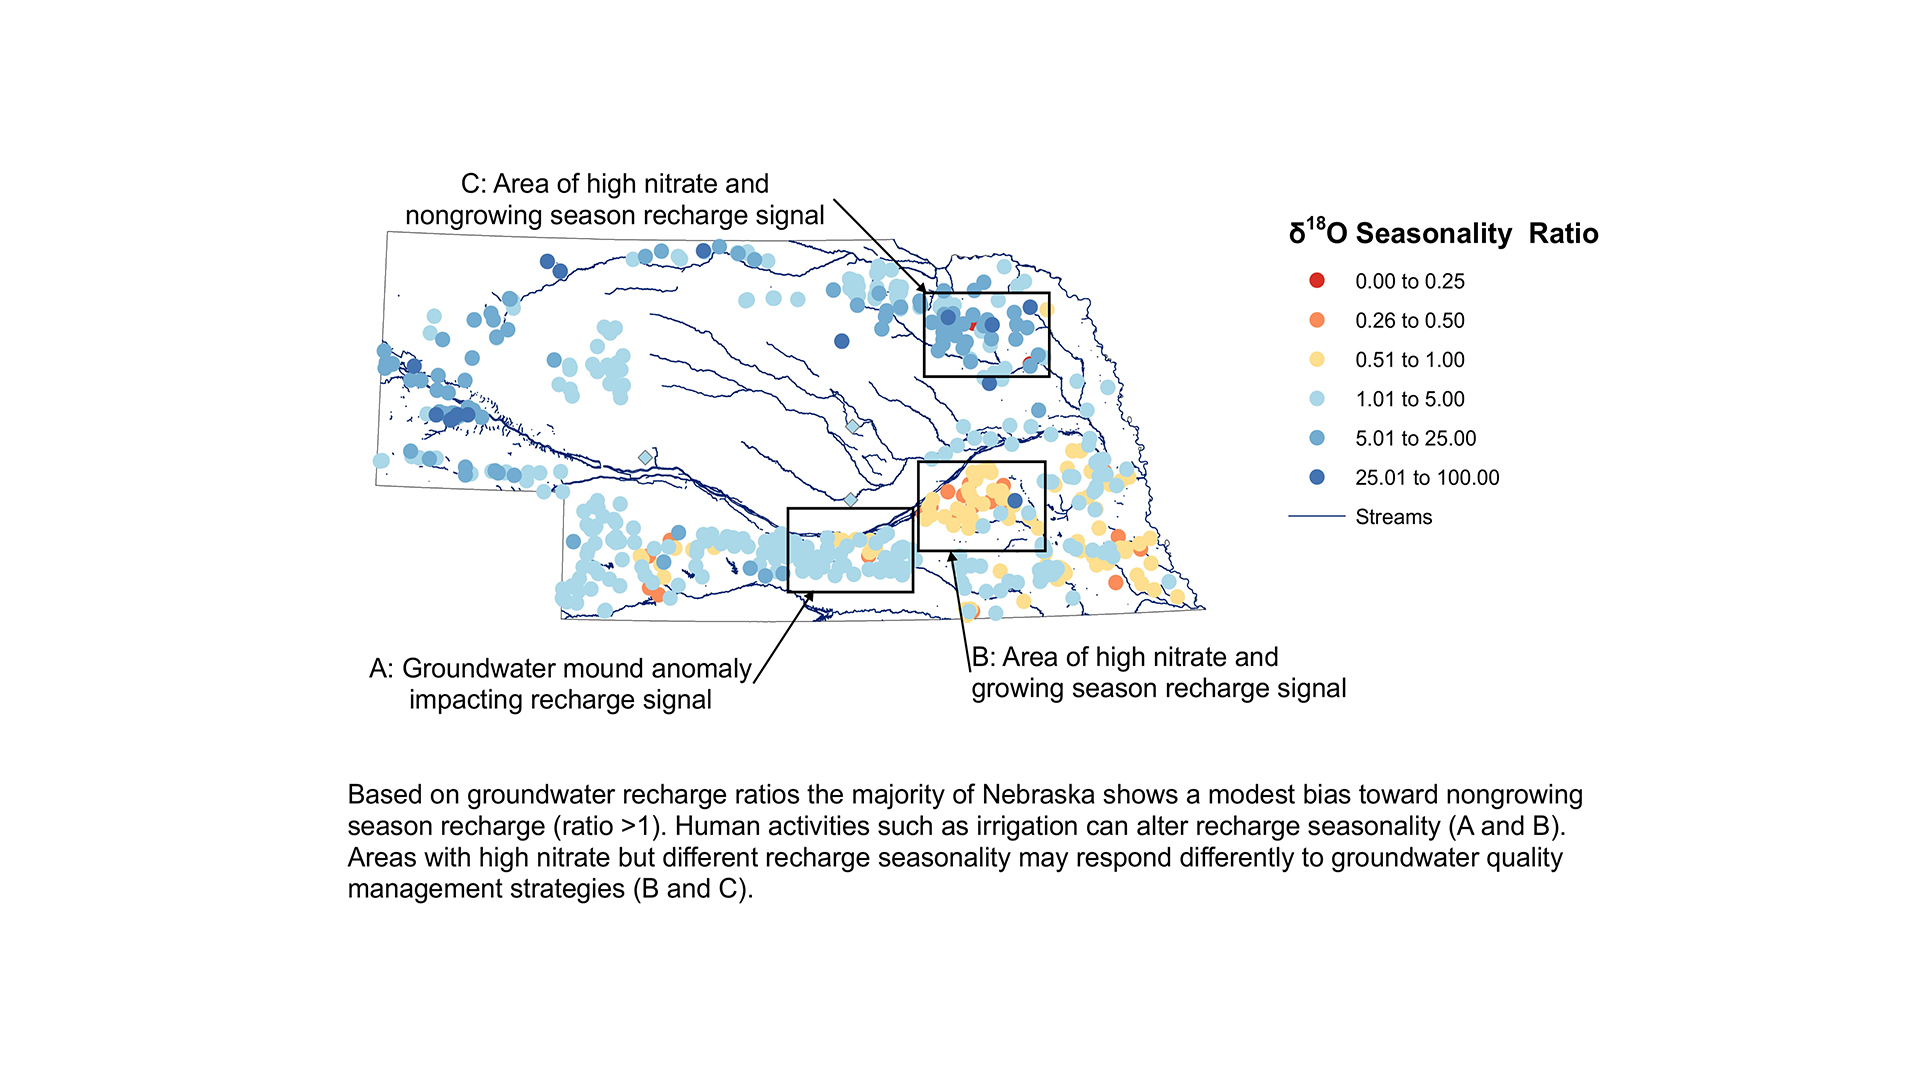 A recently published study led by University of Nebraska-Lincoln School of Natural Resources PhD candidate Mikaela Cherry found that winter precipitation reloads most of the state's groundwater supply.